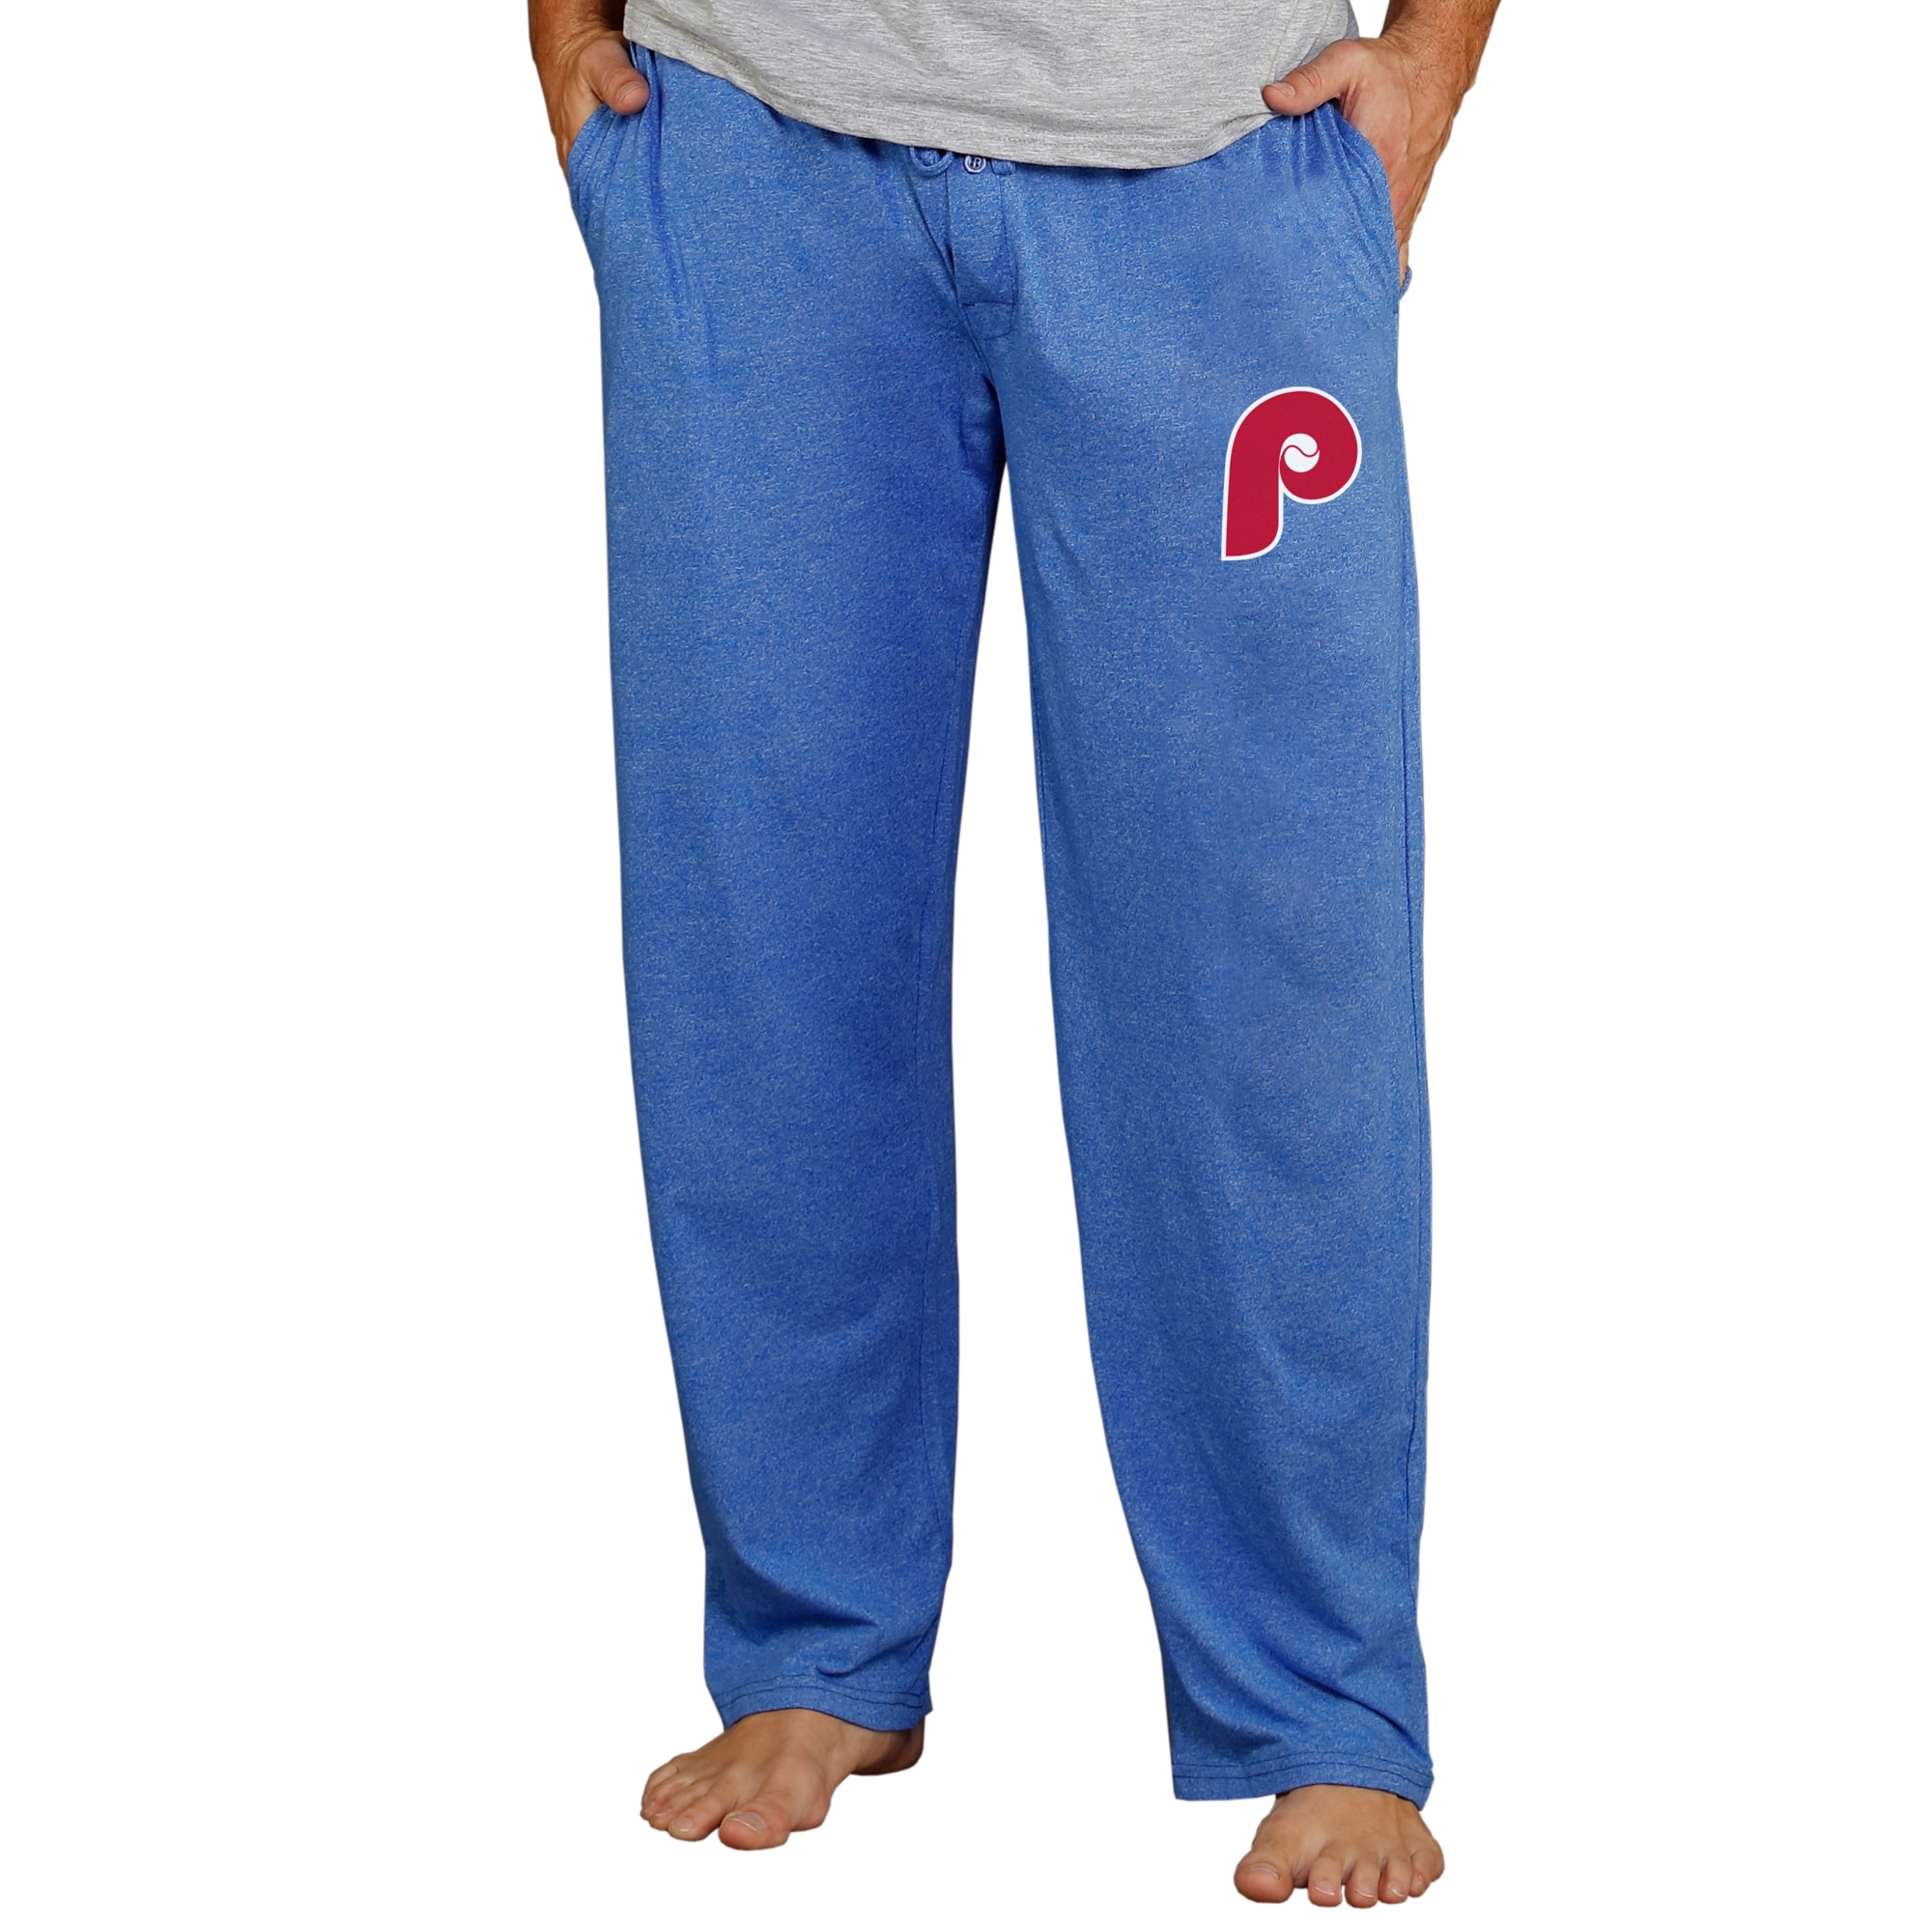 Philadelphia Phillies Concepts Sport Cooperstown Quest Lounge Pants - Royal